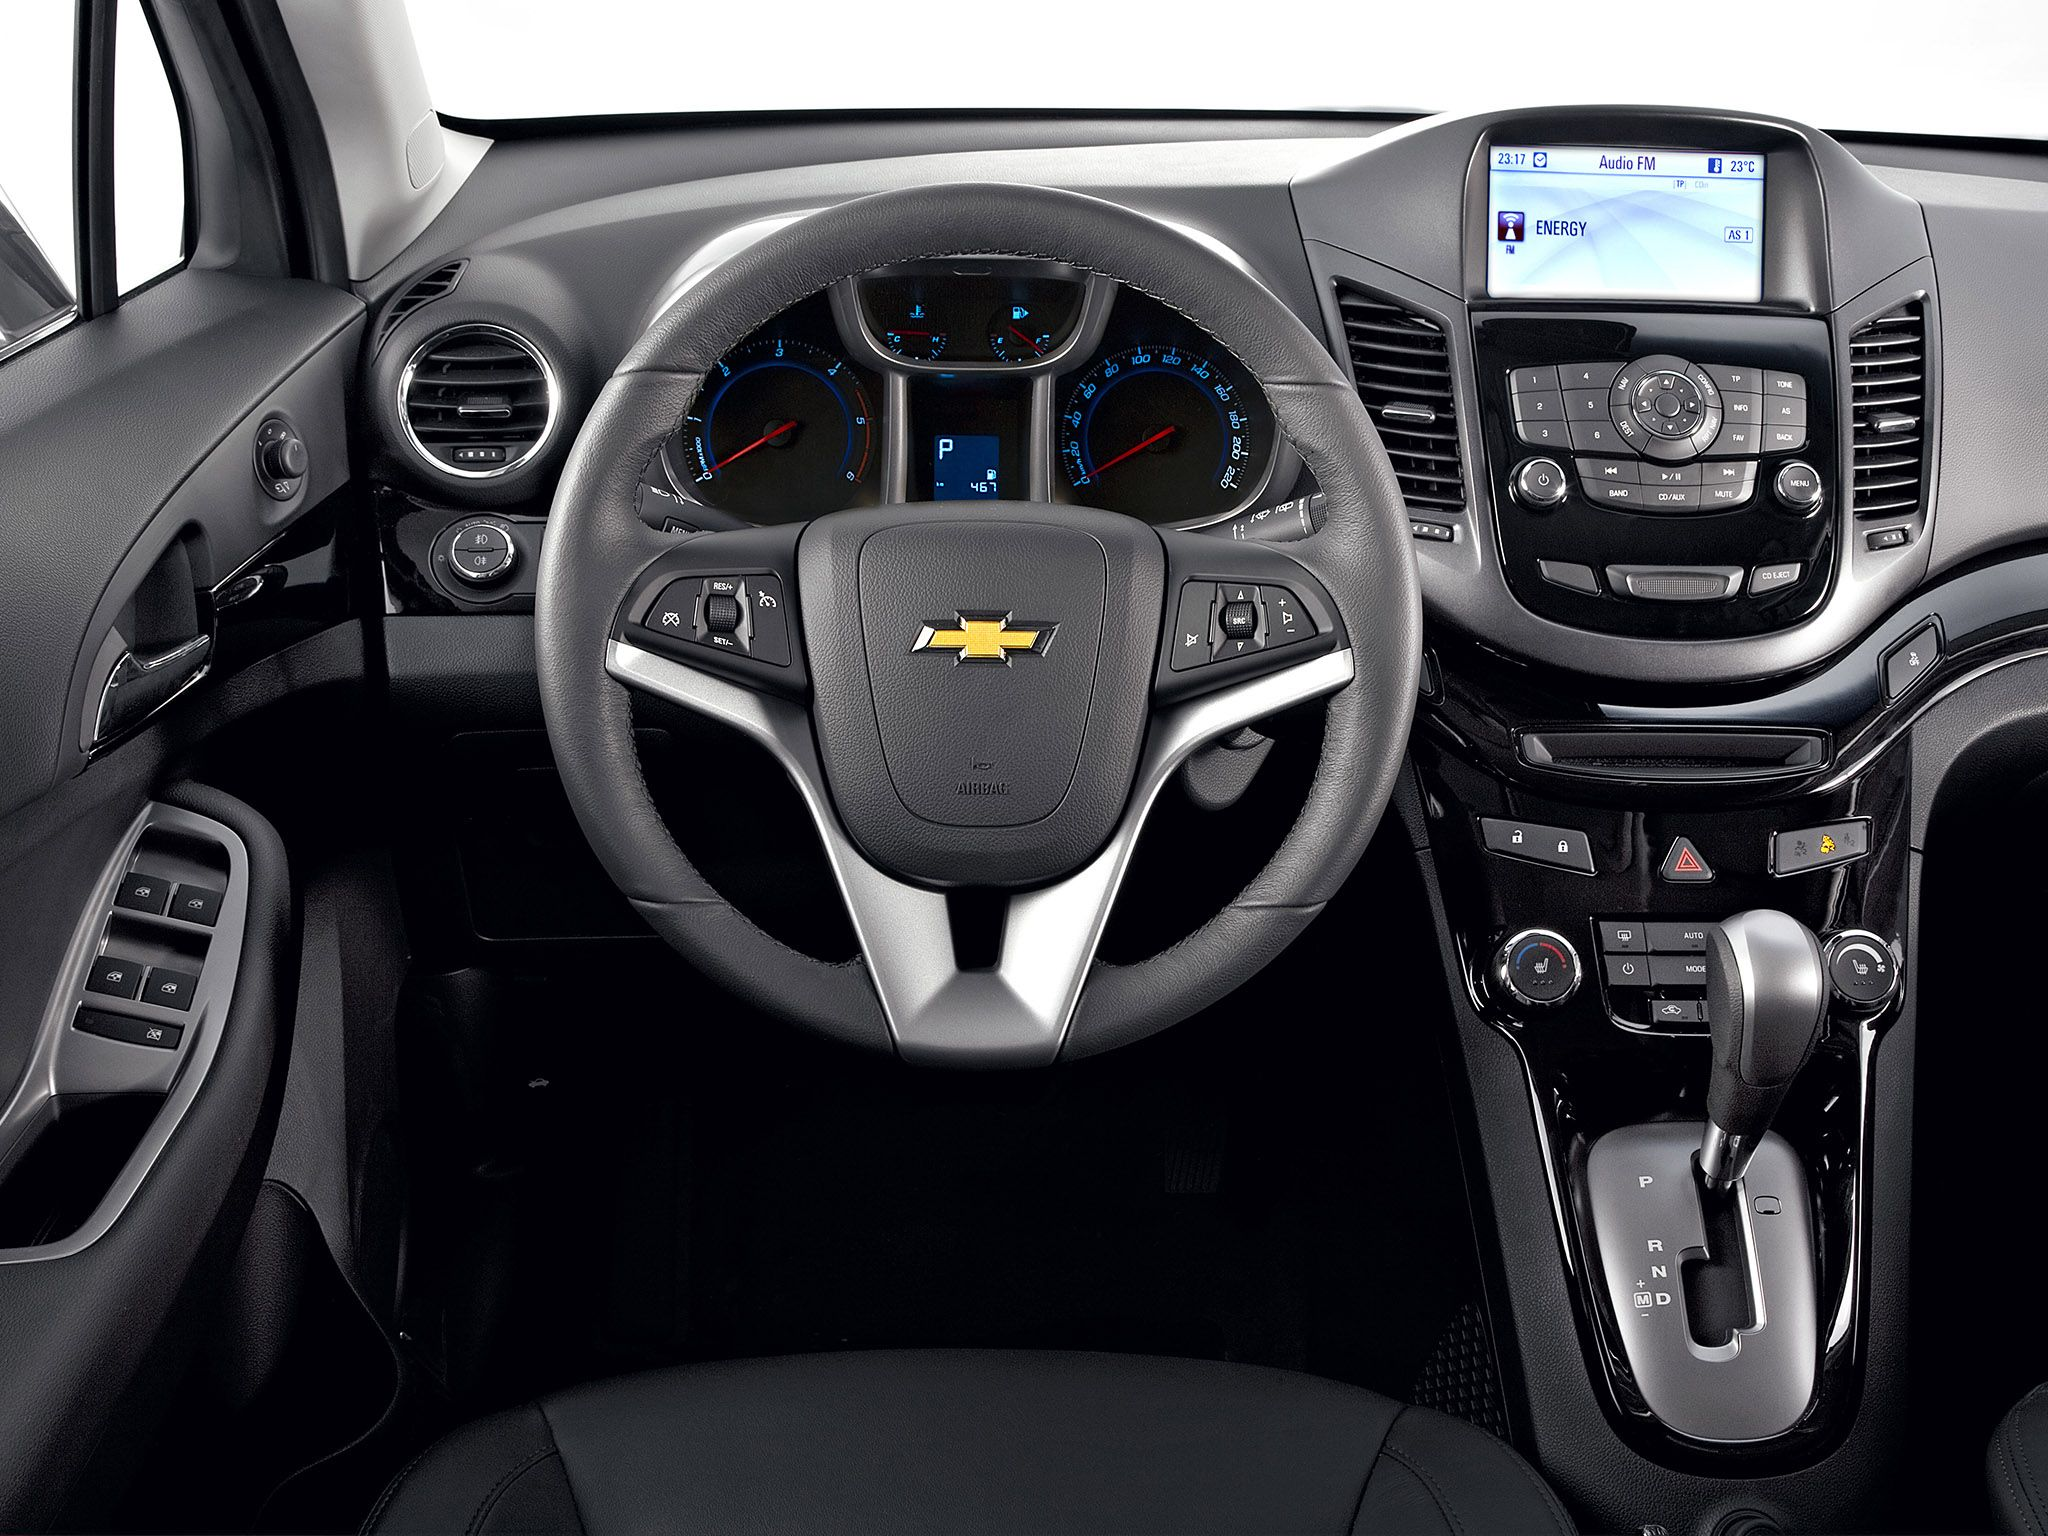 2012 chevrolet orlando mpv car interior dashboard